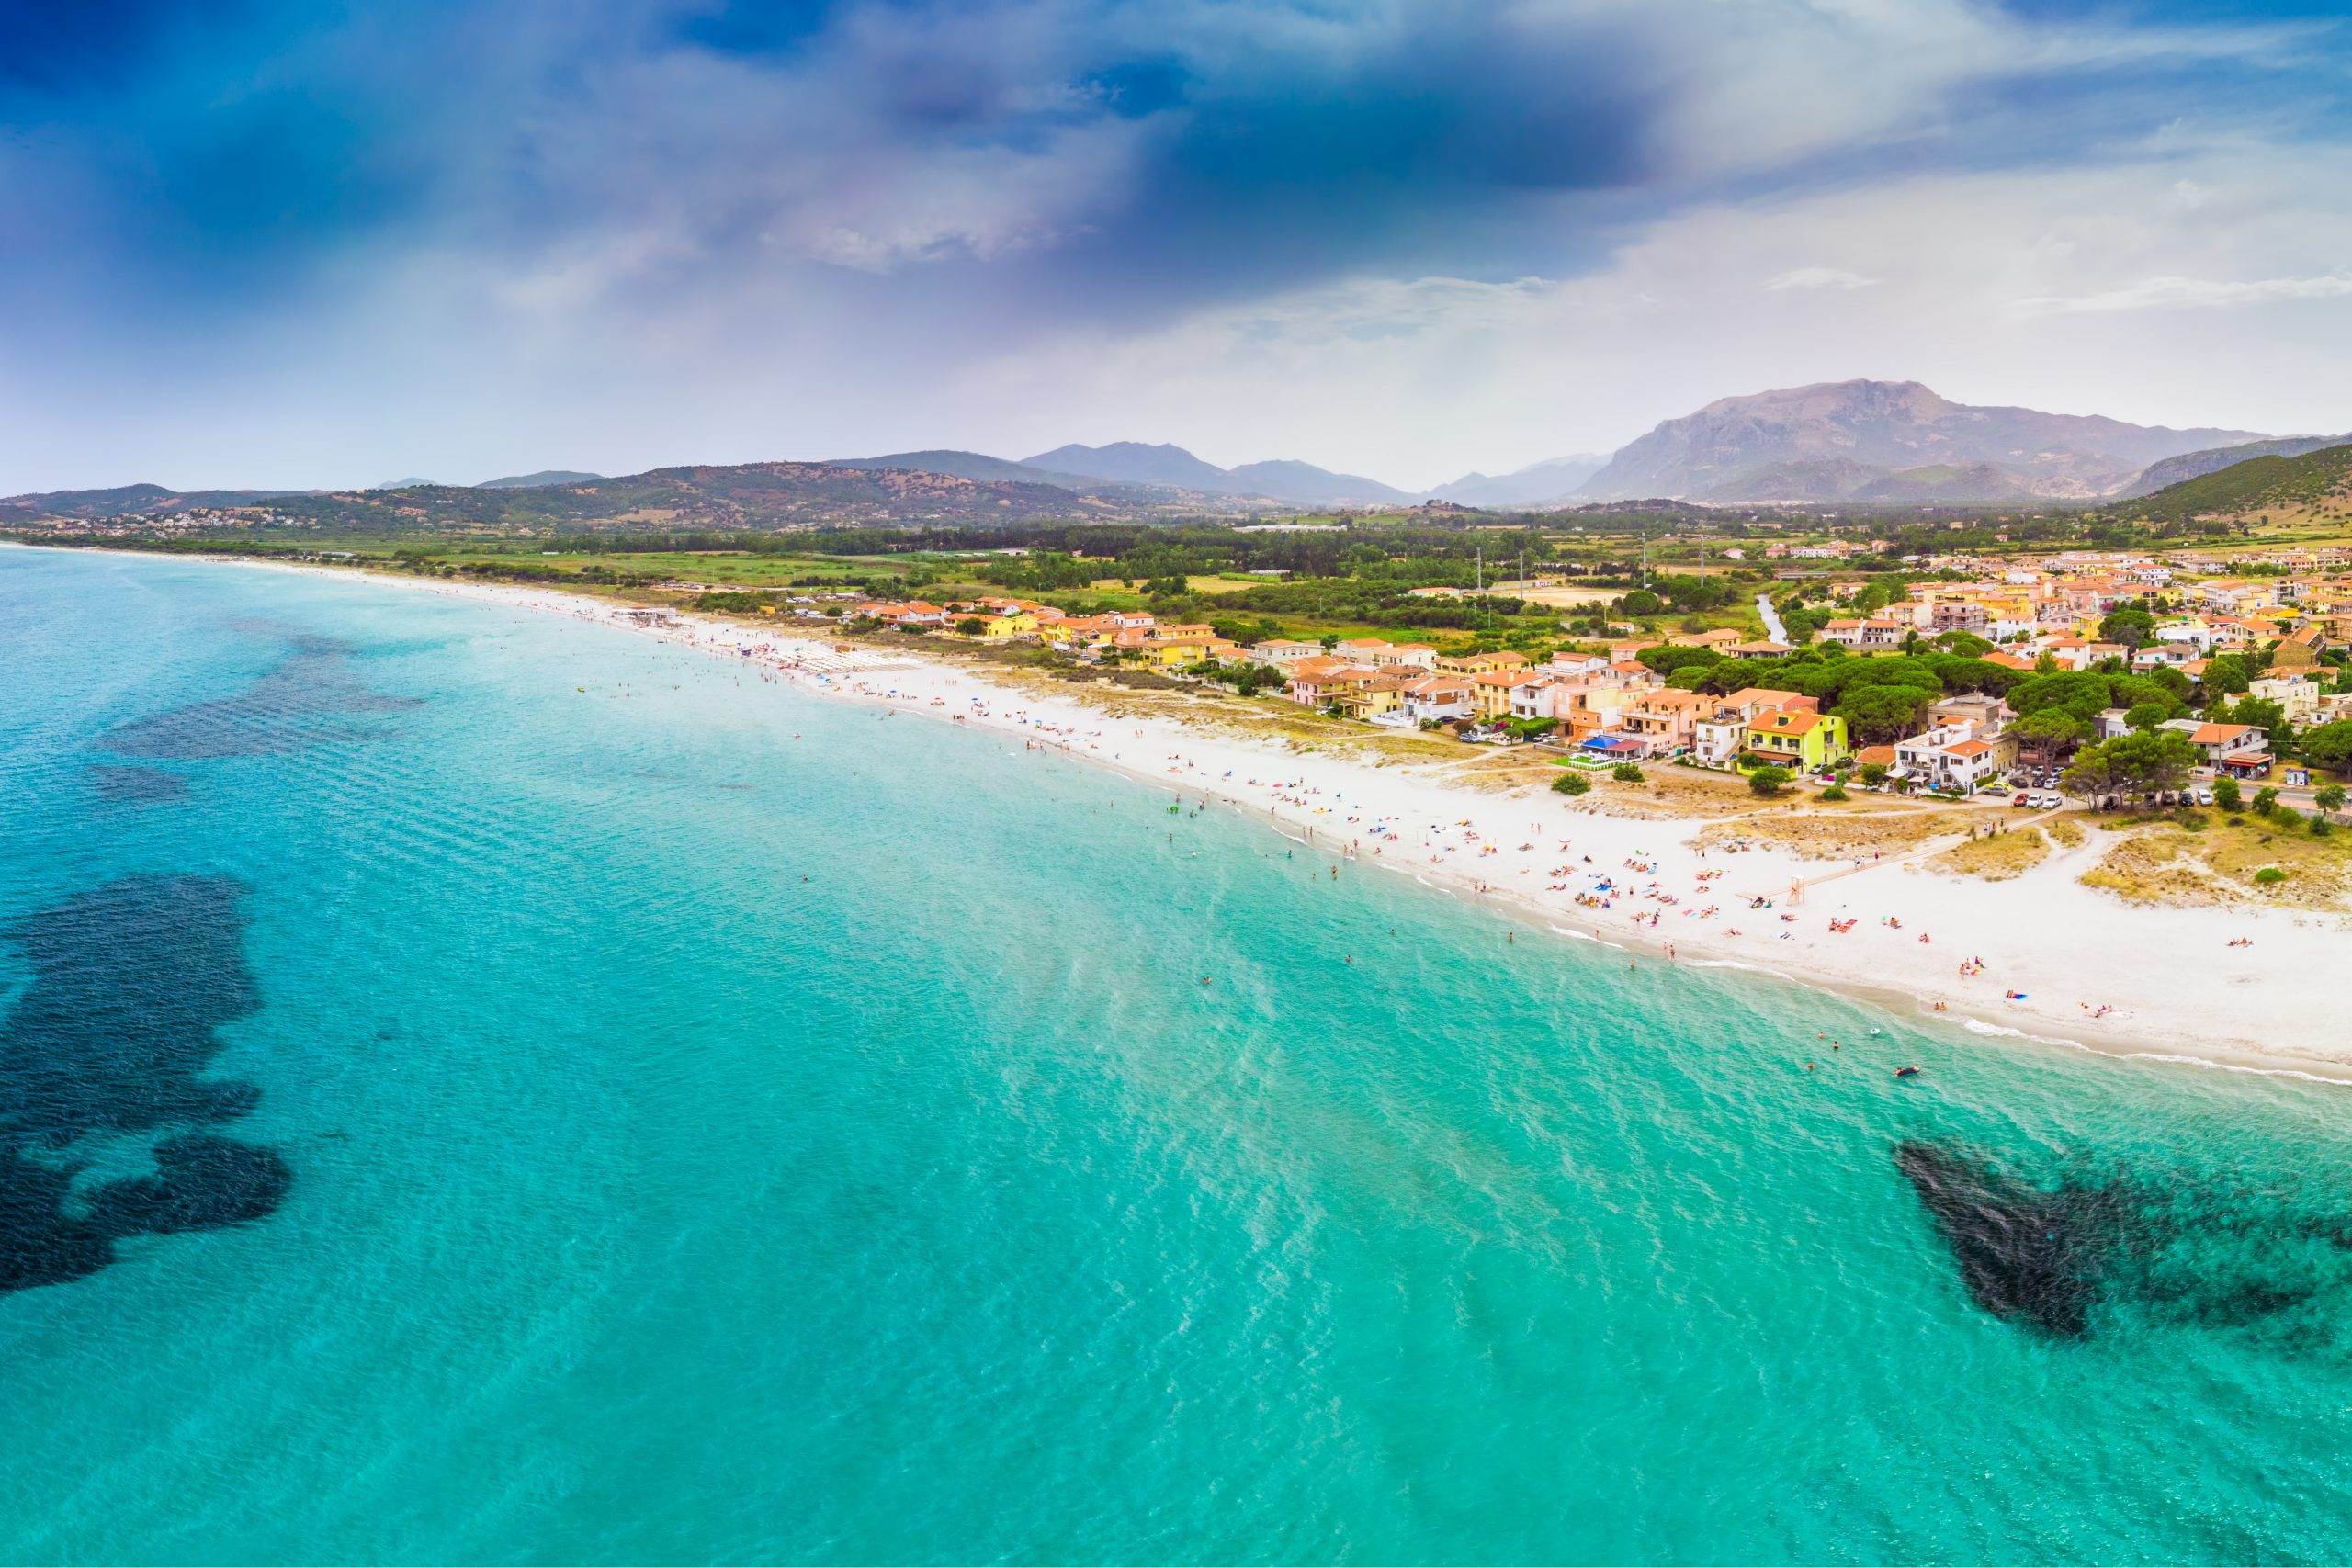 Graniro beach and La Caletta town, Sardinia, Italy, Europe.